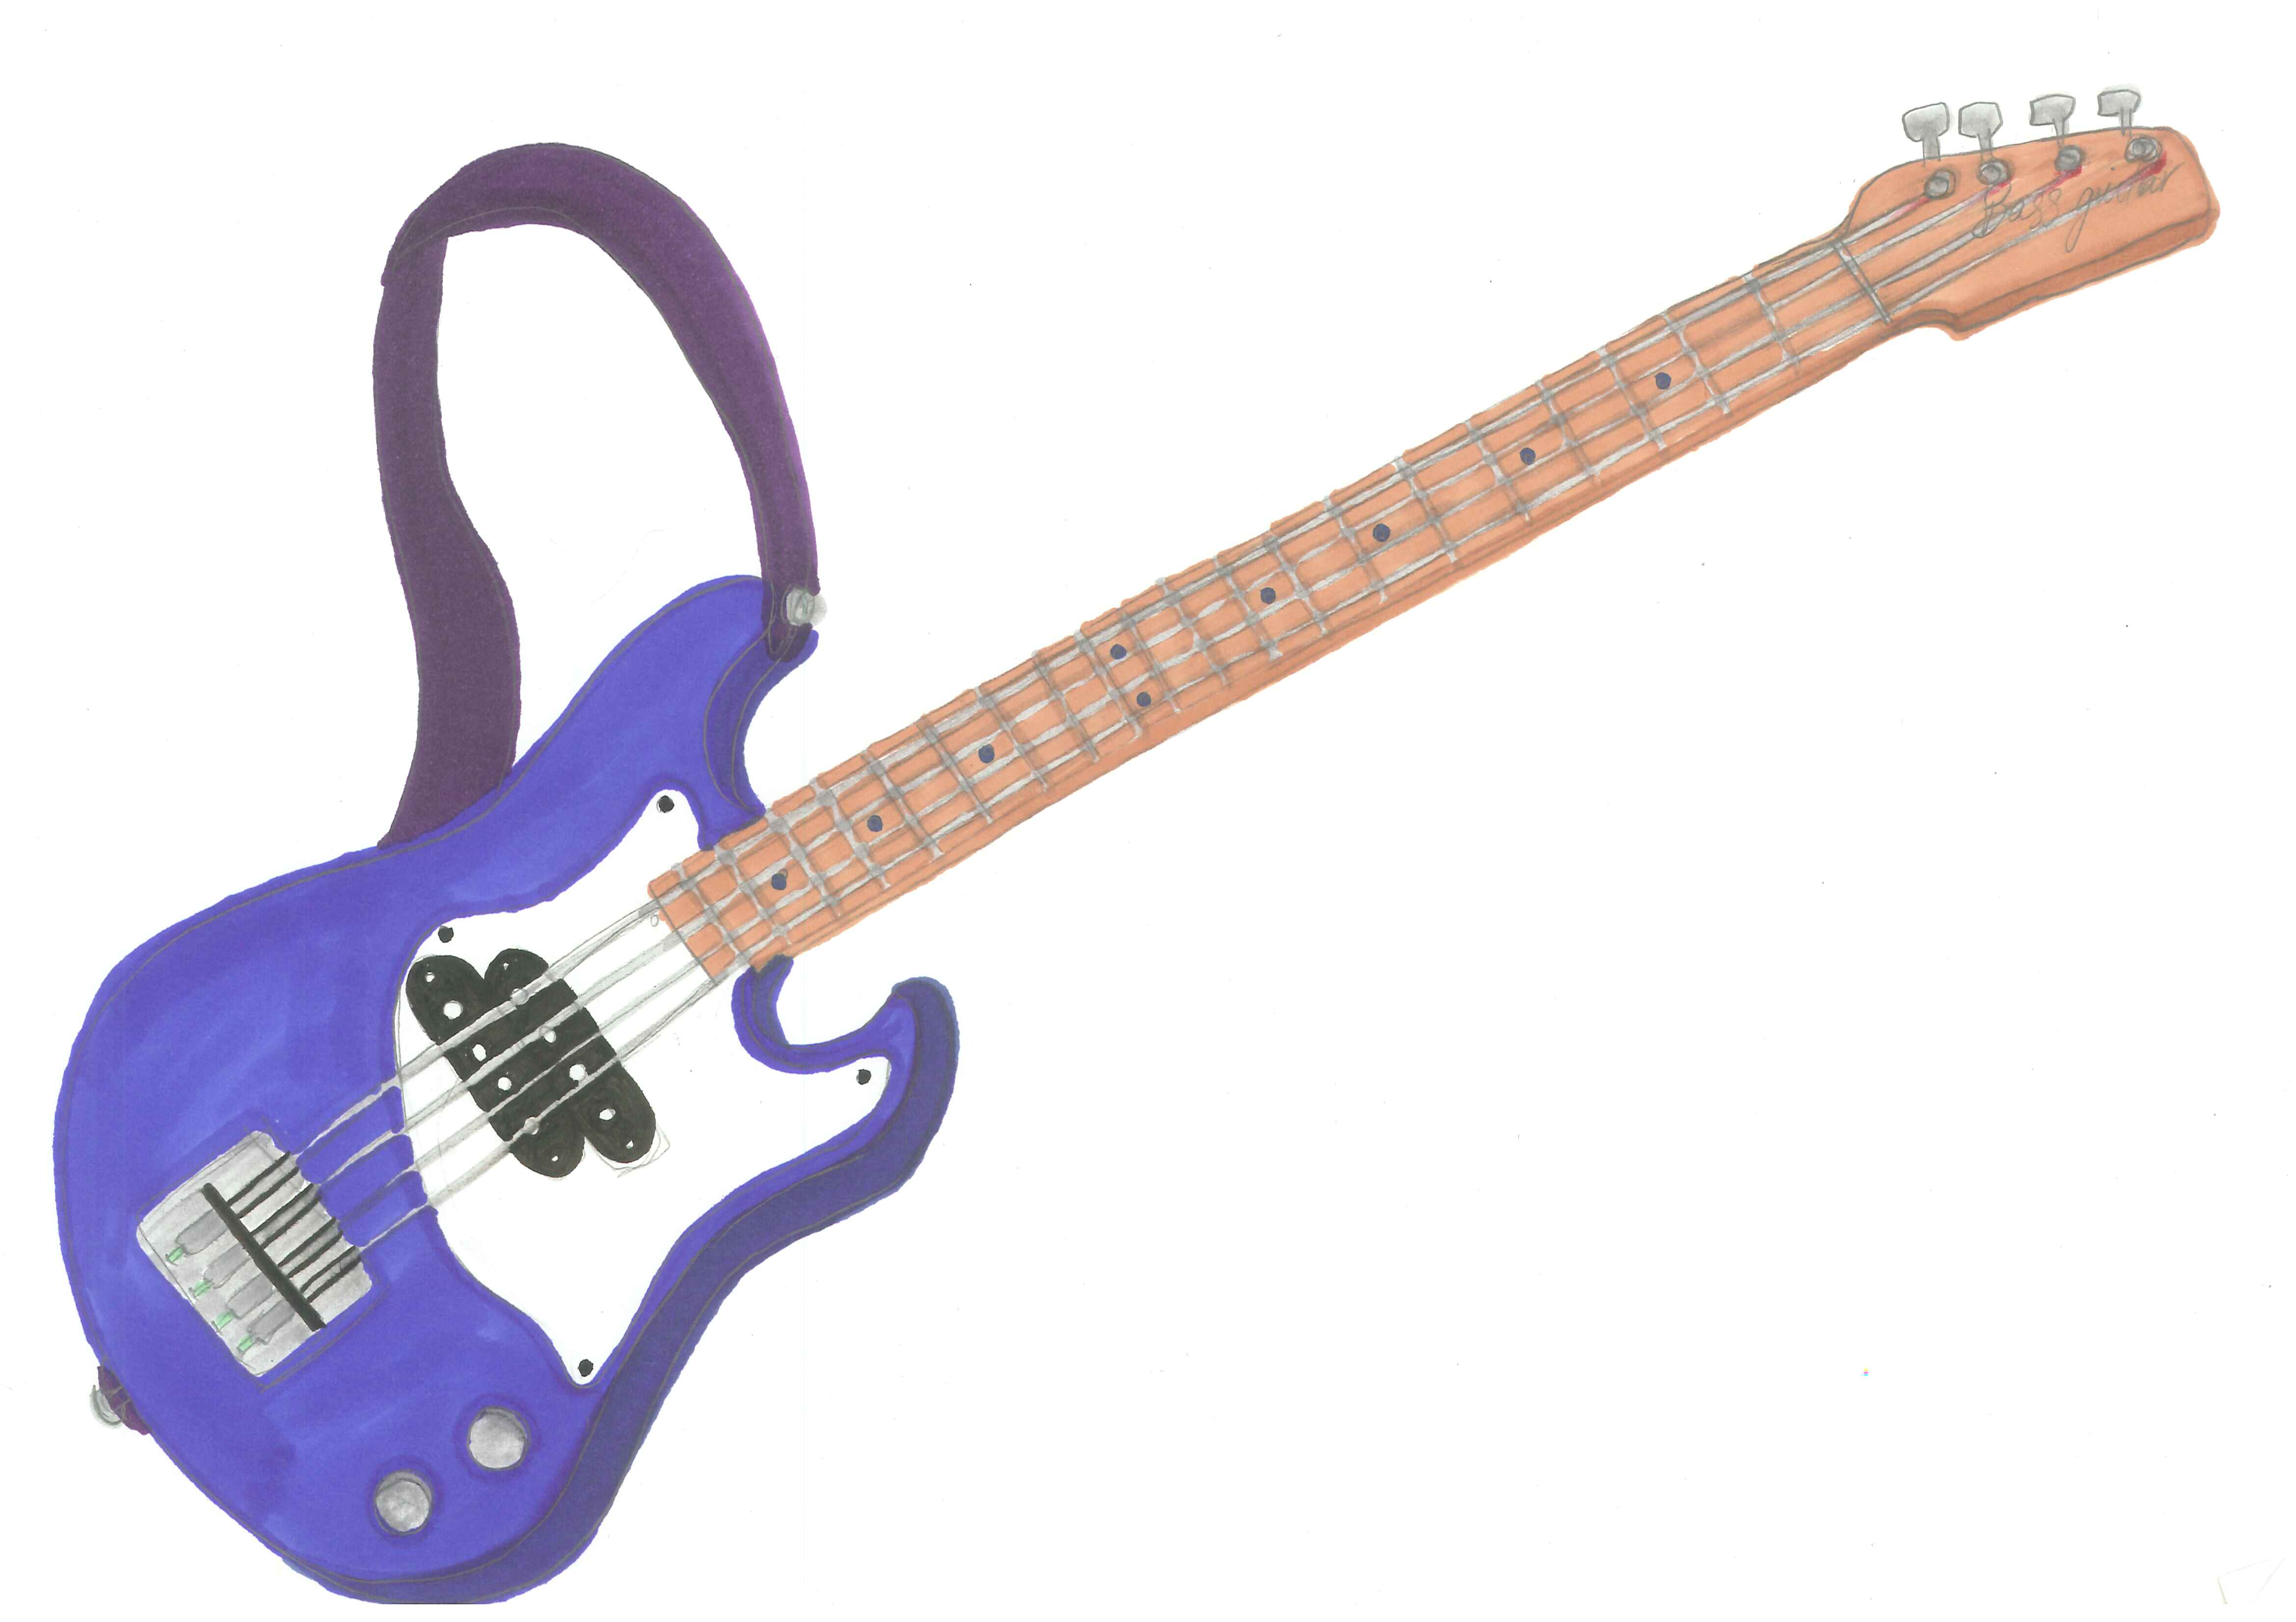 electric guitar clipart at getdrawings com free for personal use rh getdrawings com guitar clip art images guitar clip art on transparent background